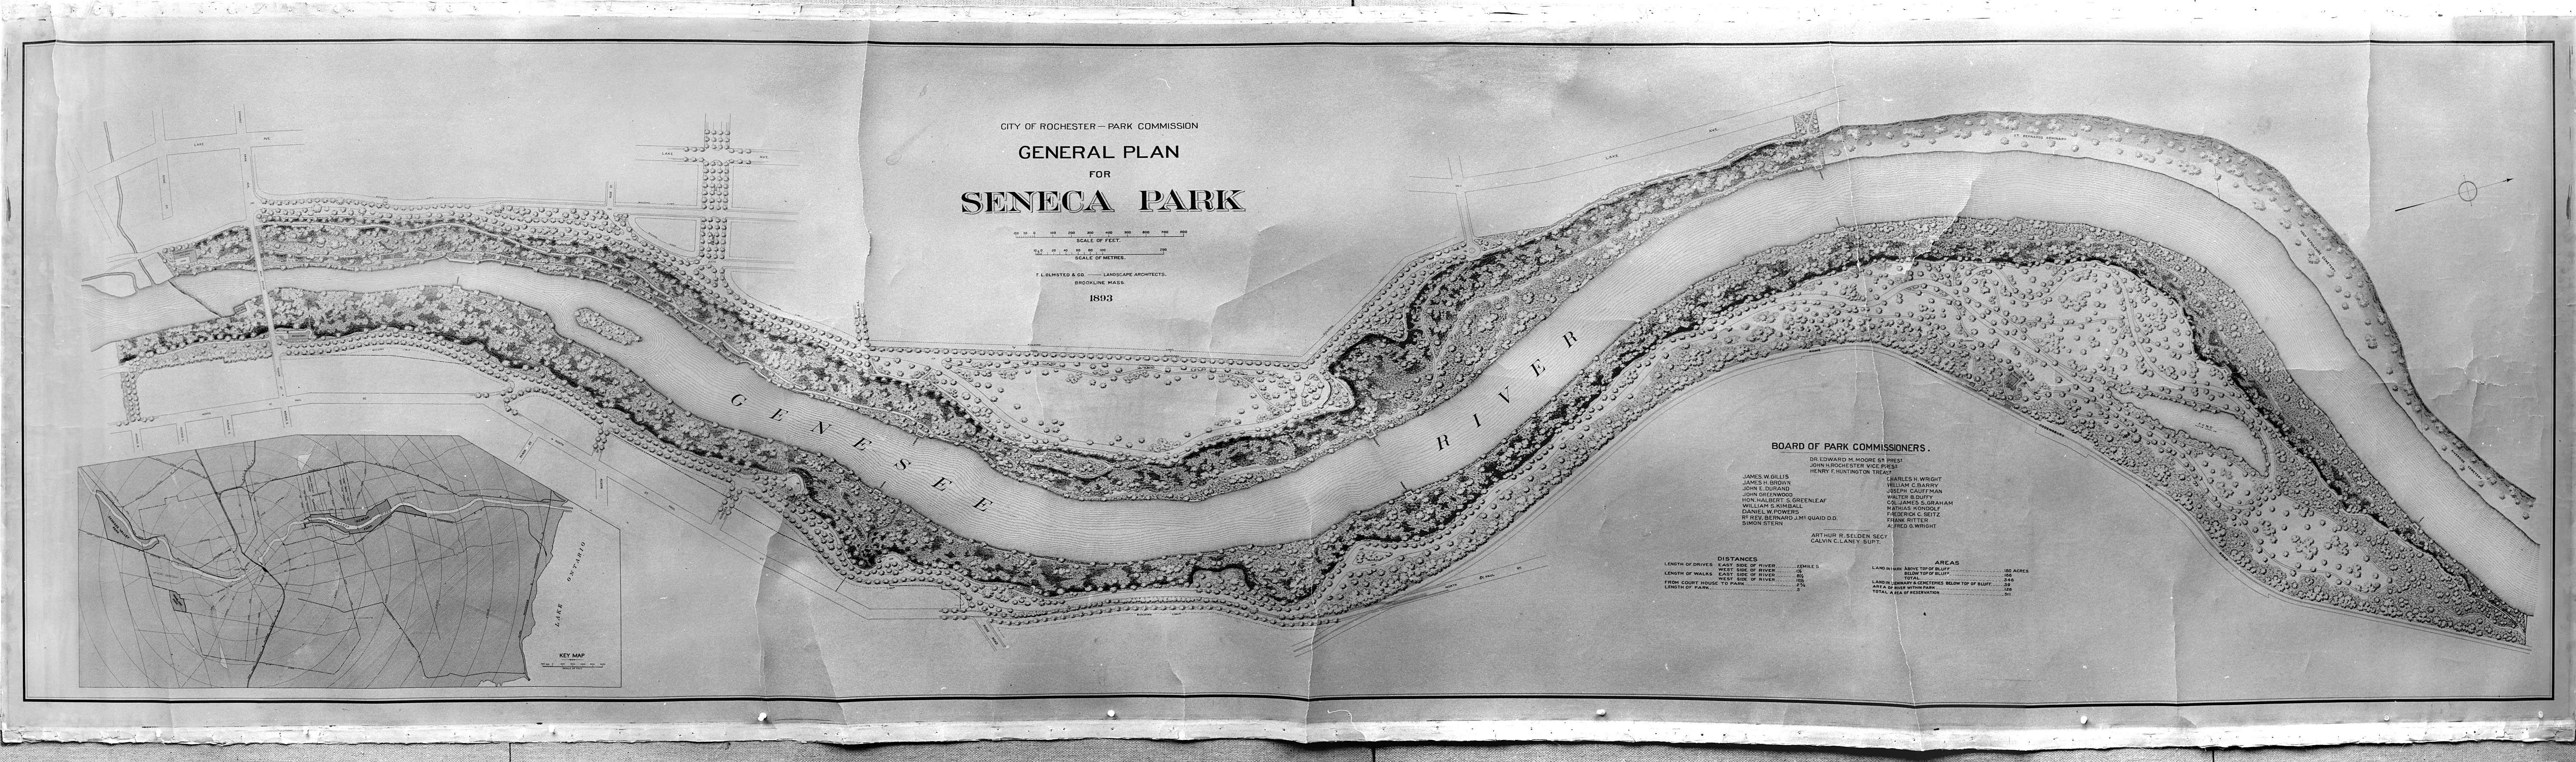 Original plan drawing of Seneca Park by Frederick Law Olmsted & Co.